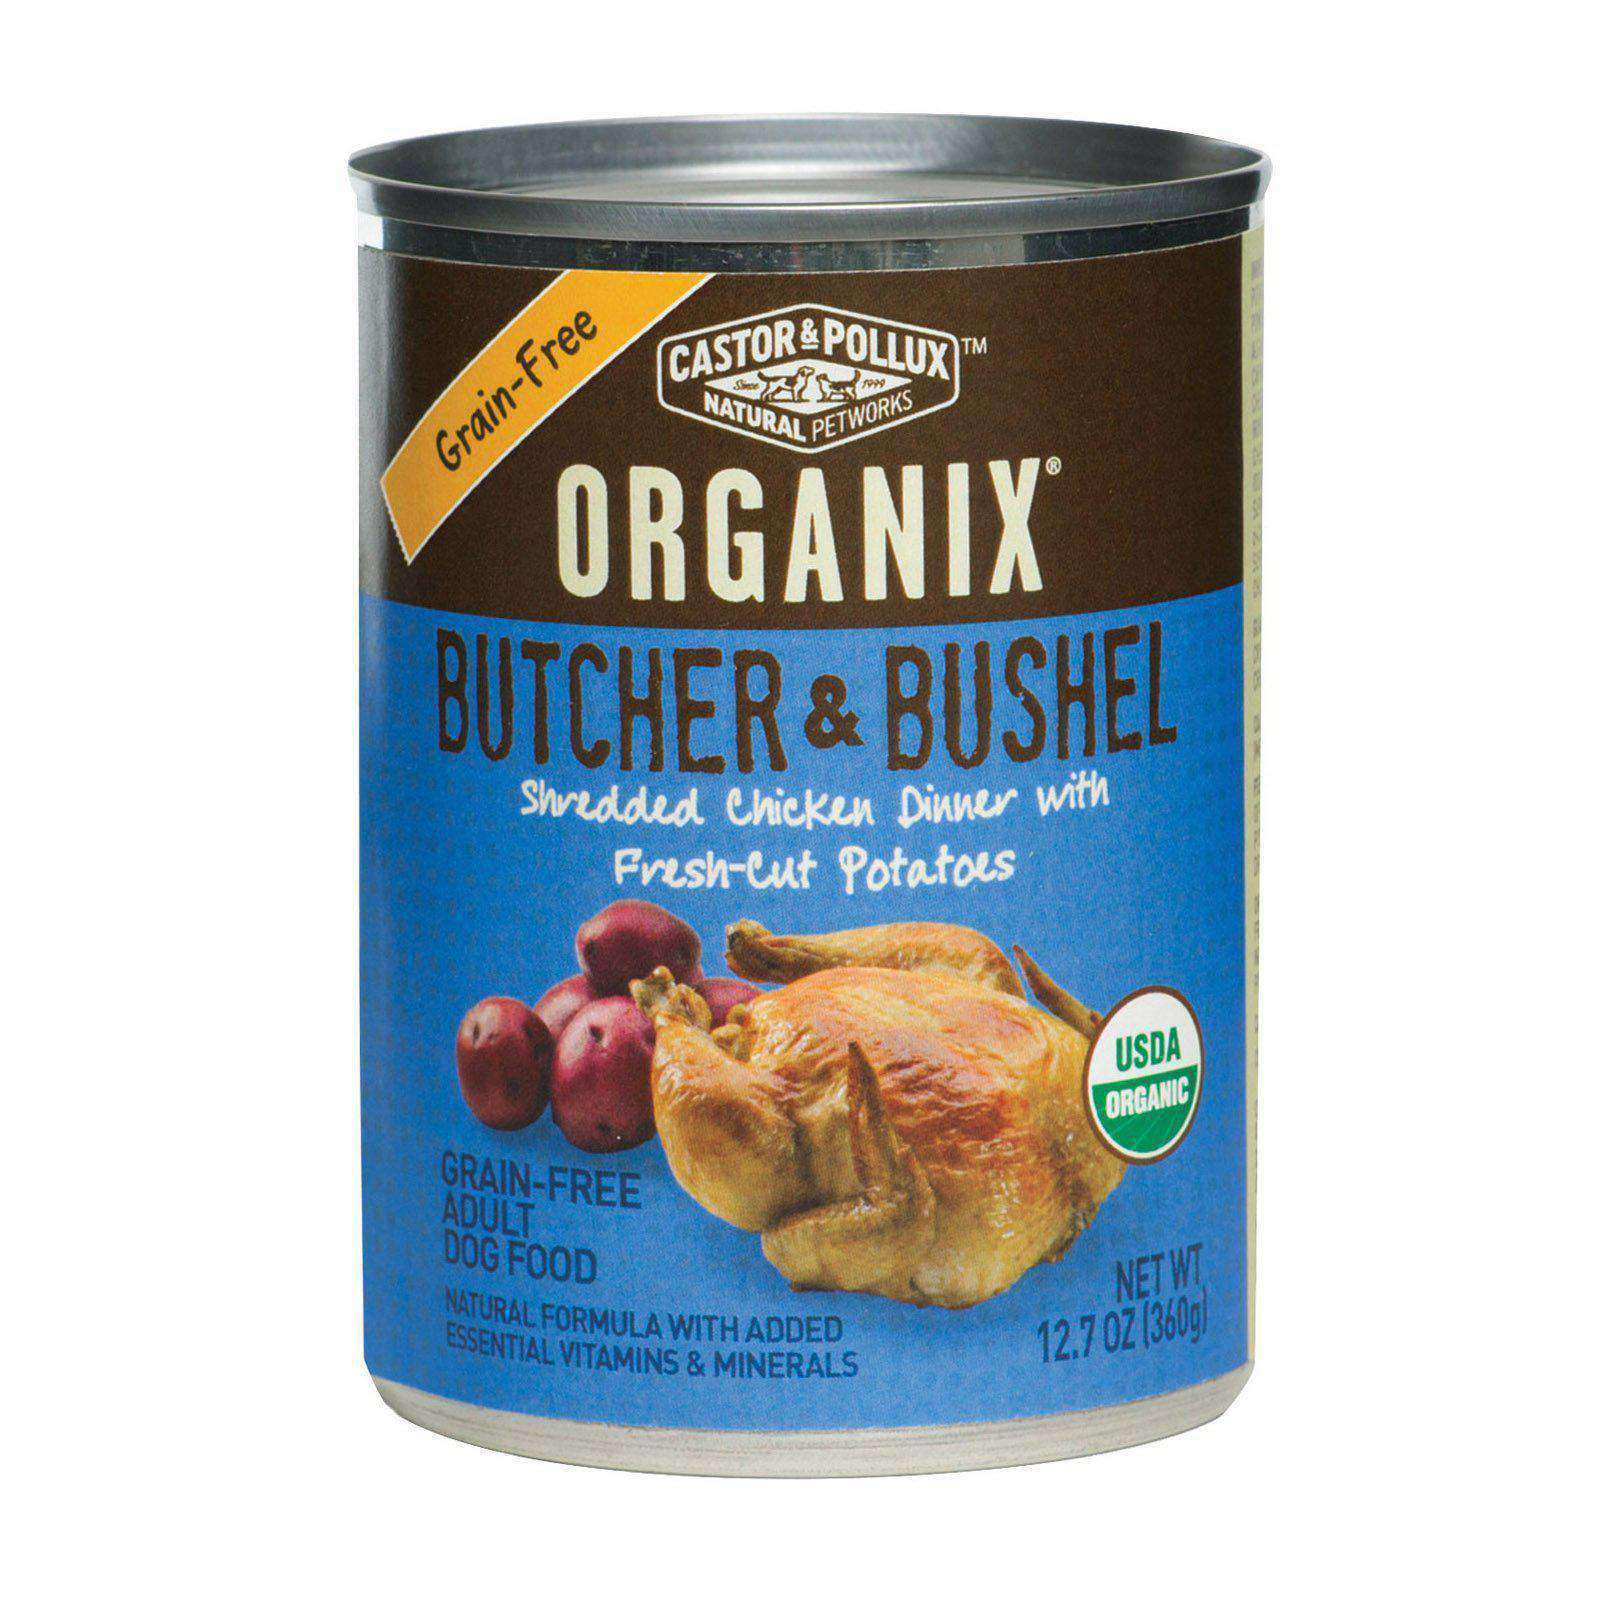 Castor And Pollux Organic Butcher And Bushel Canned Dog Food - Shredded Chicken - Case Of 12 - 12.7 Oz.-Castor & Pollux-DirtyFurClothing